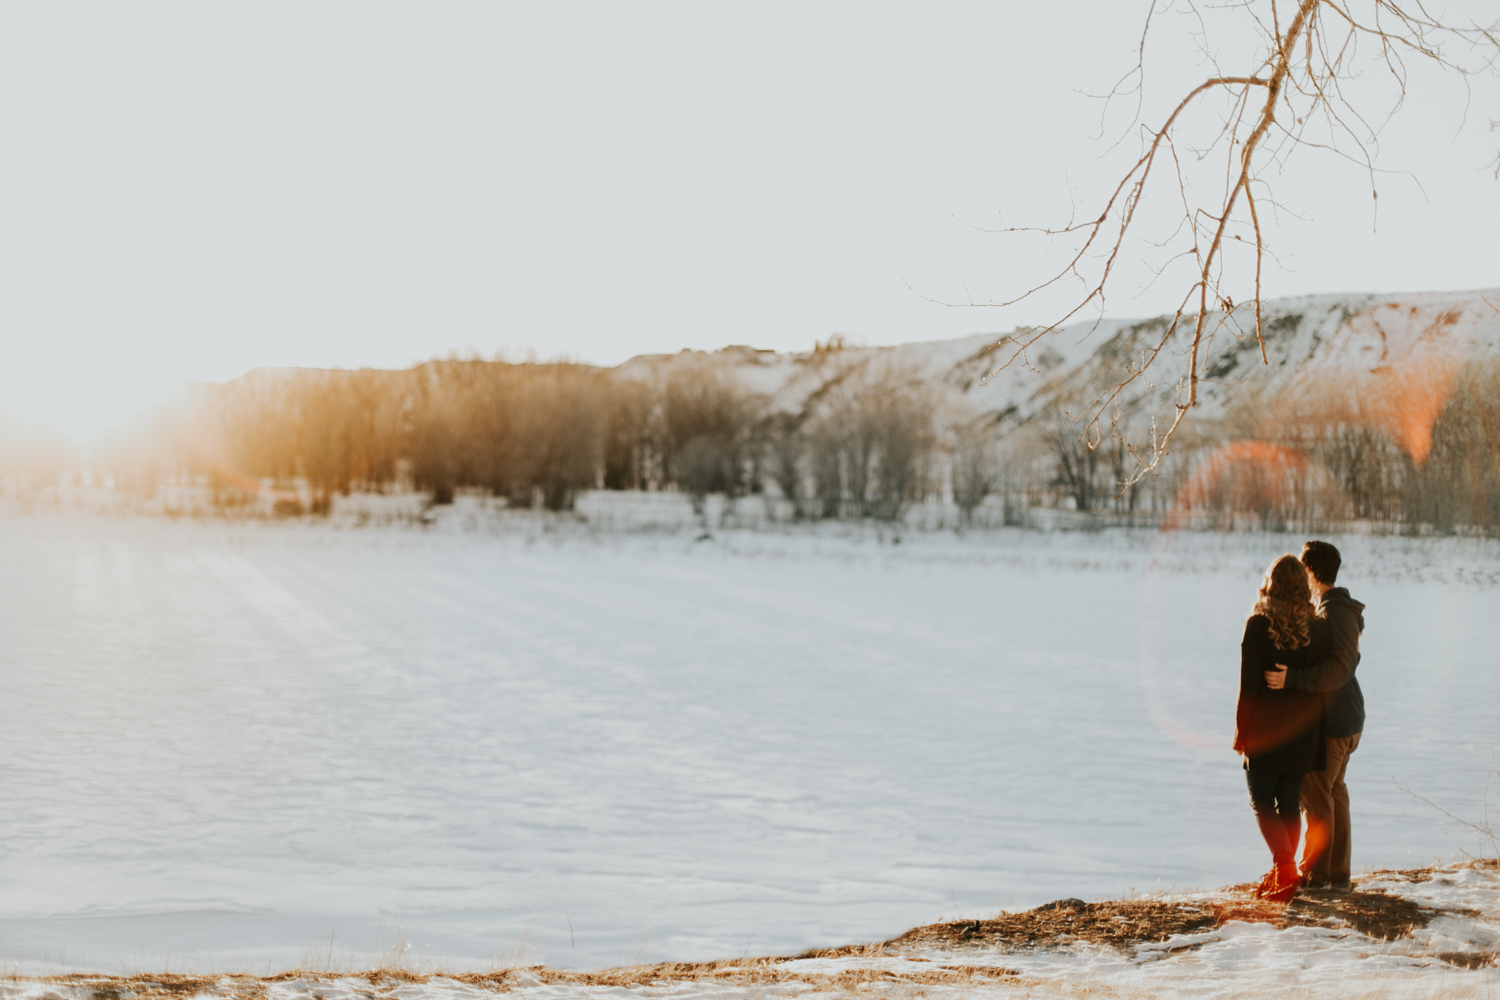 lethbridge-photography-love-and-be-loved-photographer-dan-tynnea-engagement-picture-image-photo-56.jpg